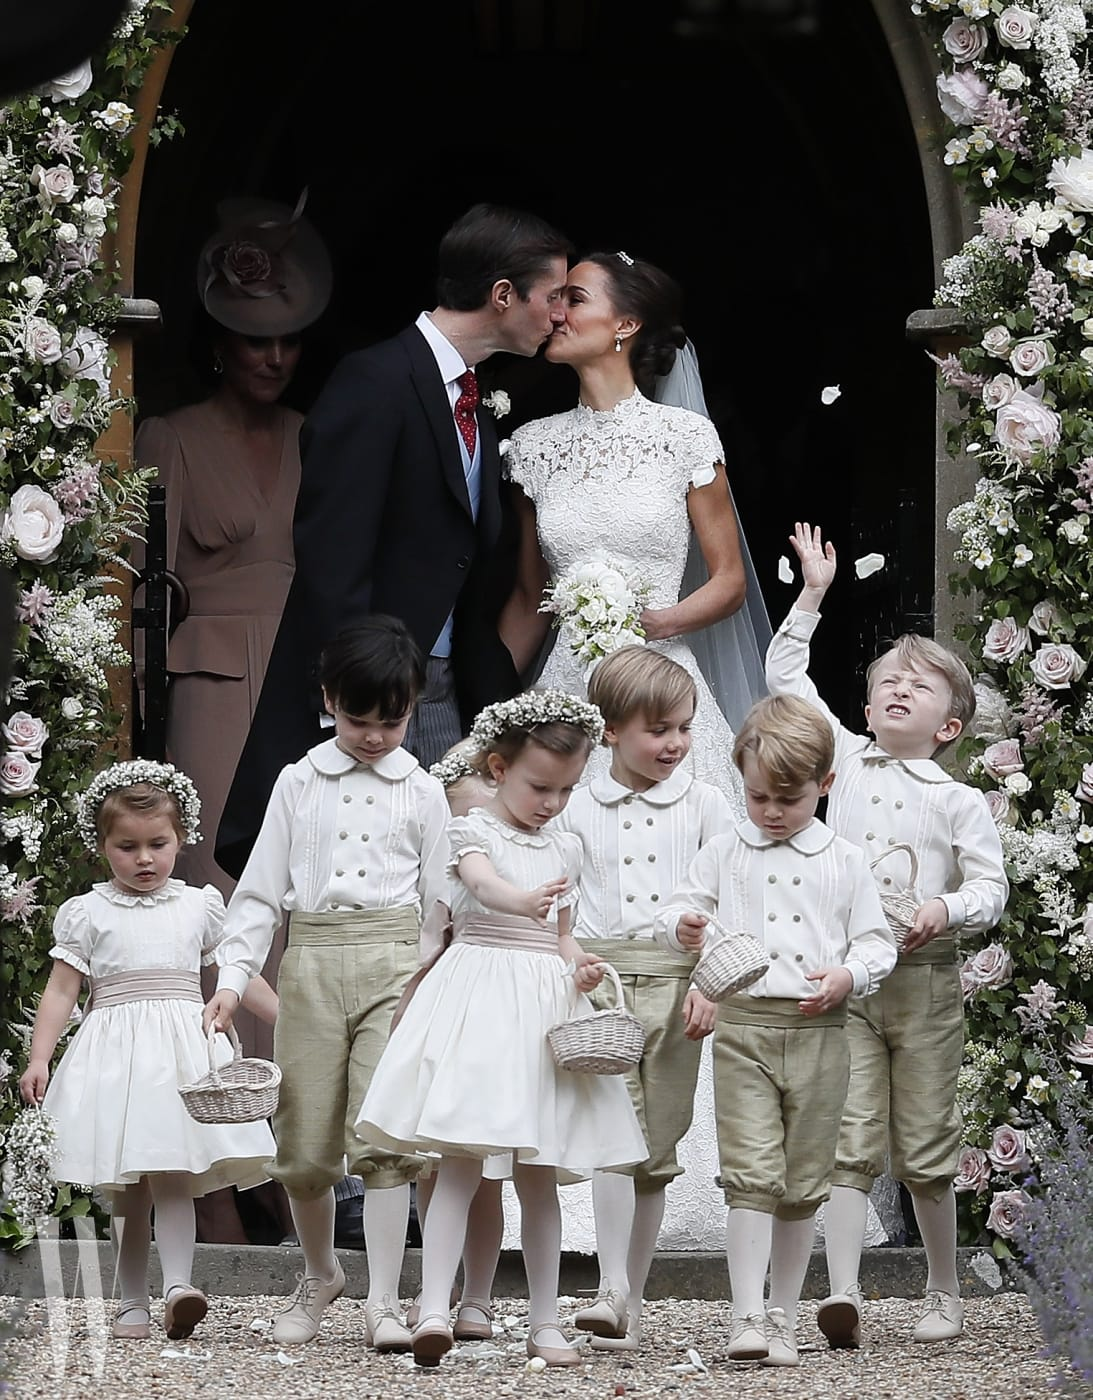 ENGLEFIELD, ENGLAND - MAY 20:  Pippa Middleton and James Matthews kiss after their wedding at St Mark's Church on May 20, 2017 in Englefield, England.Middleton, the sister of Catherine, Duchess of Cambridge married hedge fund manager James Matthews in a ceremony Saturday where her niece and nephew Prince George and Princess Charlotte was in the wedding party, along with sister Kate and princes Harry and William. (Photo by Kirsty Wigglesworth - Pool/Getty Images)